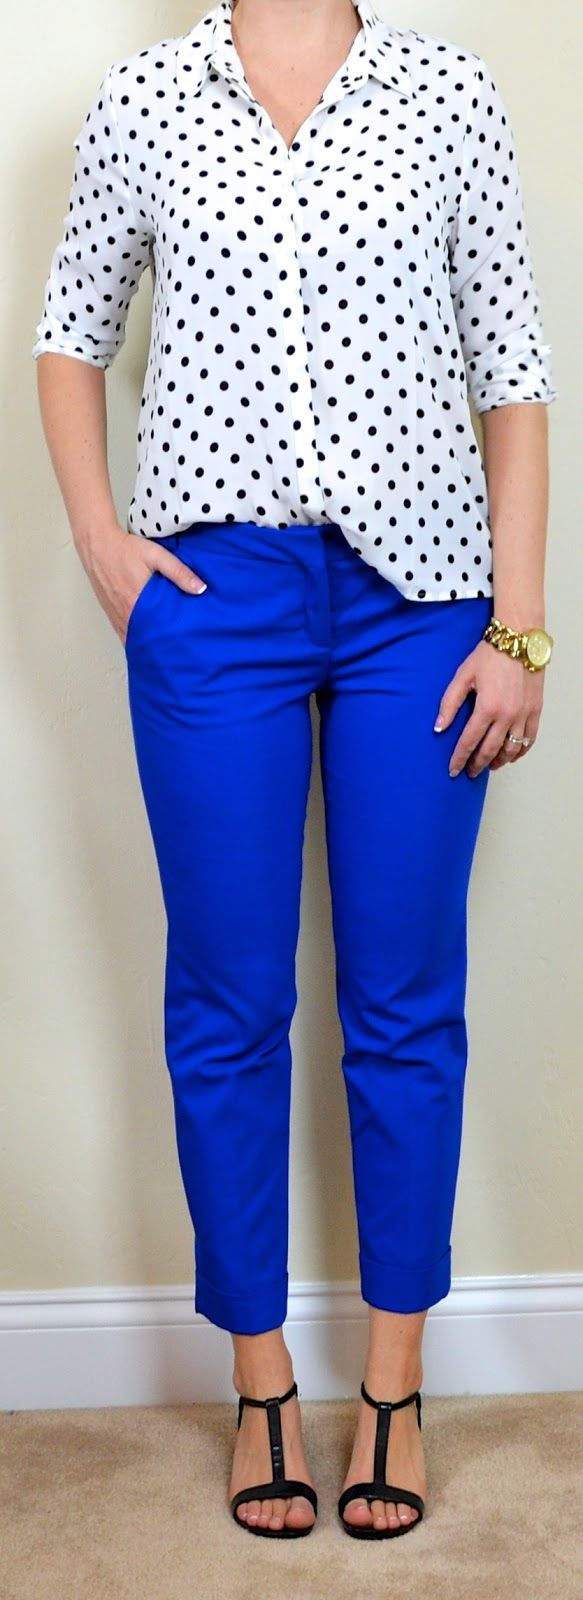 17 Best ideas about Blue Pants Outfit on Pinterest | Professional ...